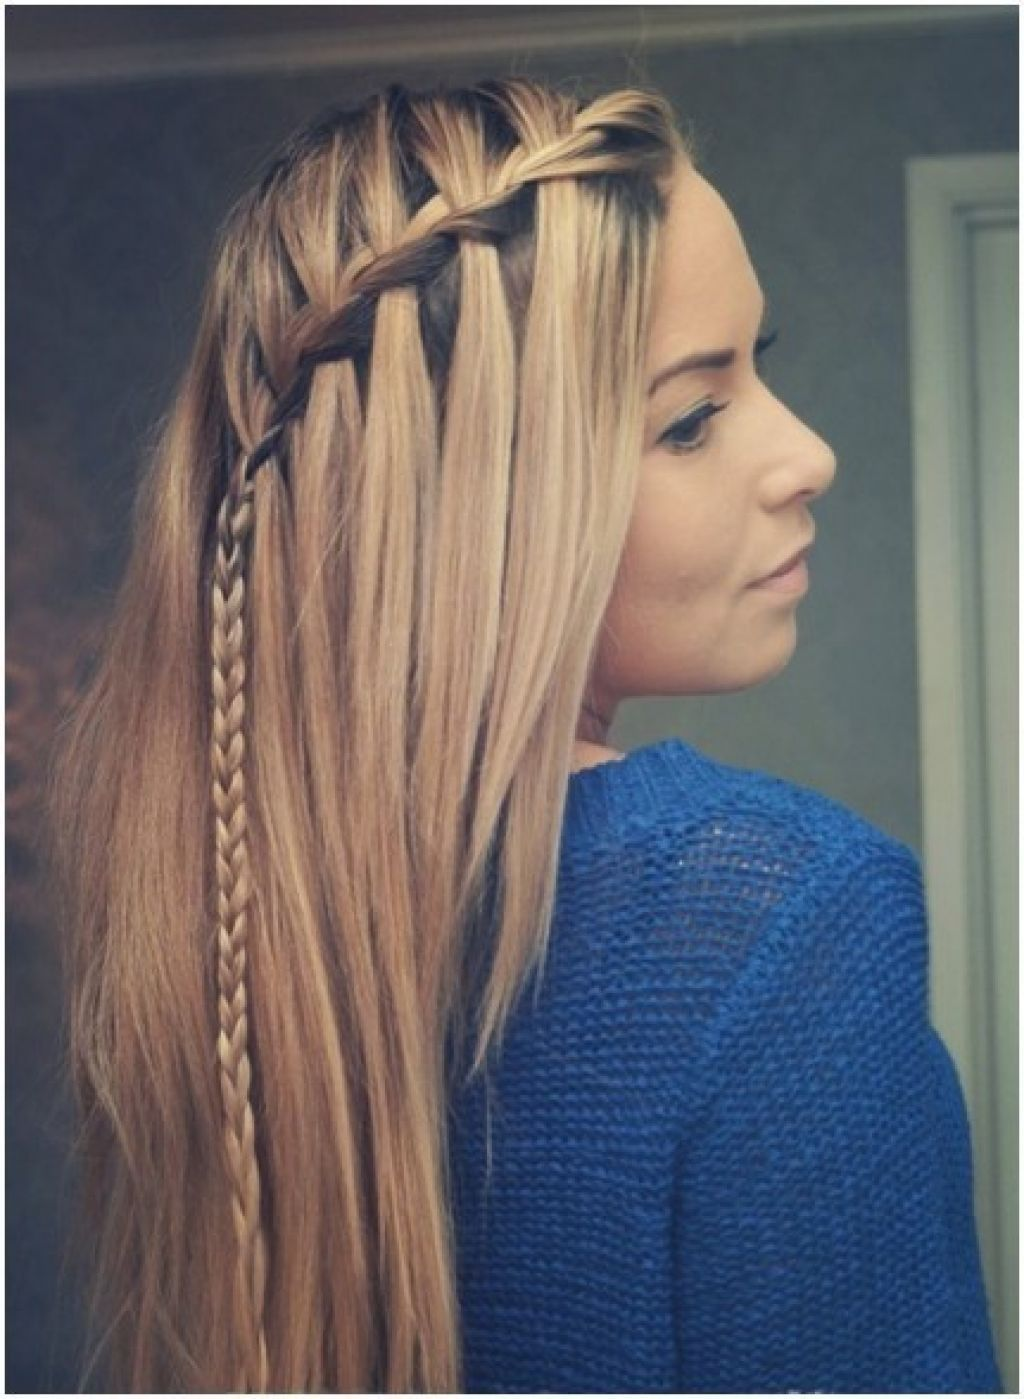 Hairstyles For Straight Hair Simple Hairstyle Ideas For Women